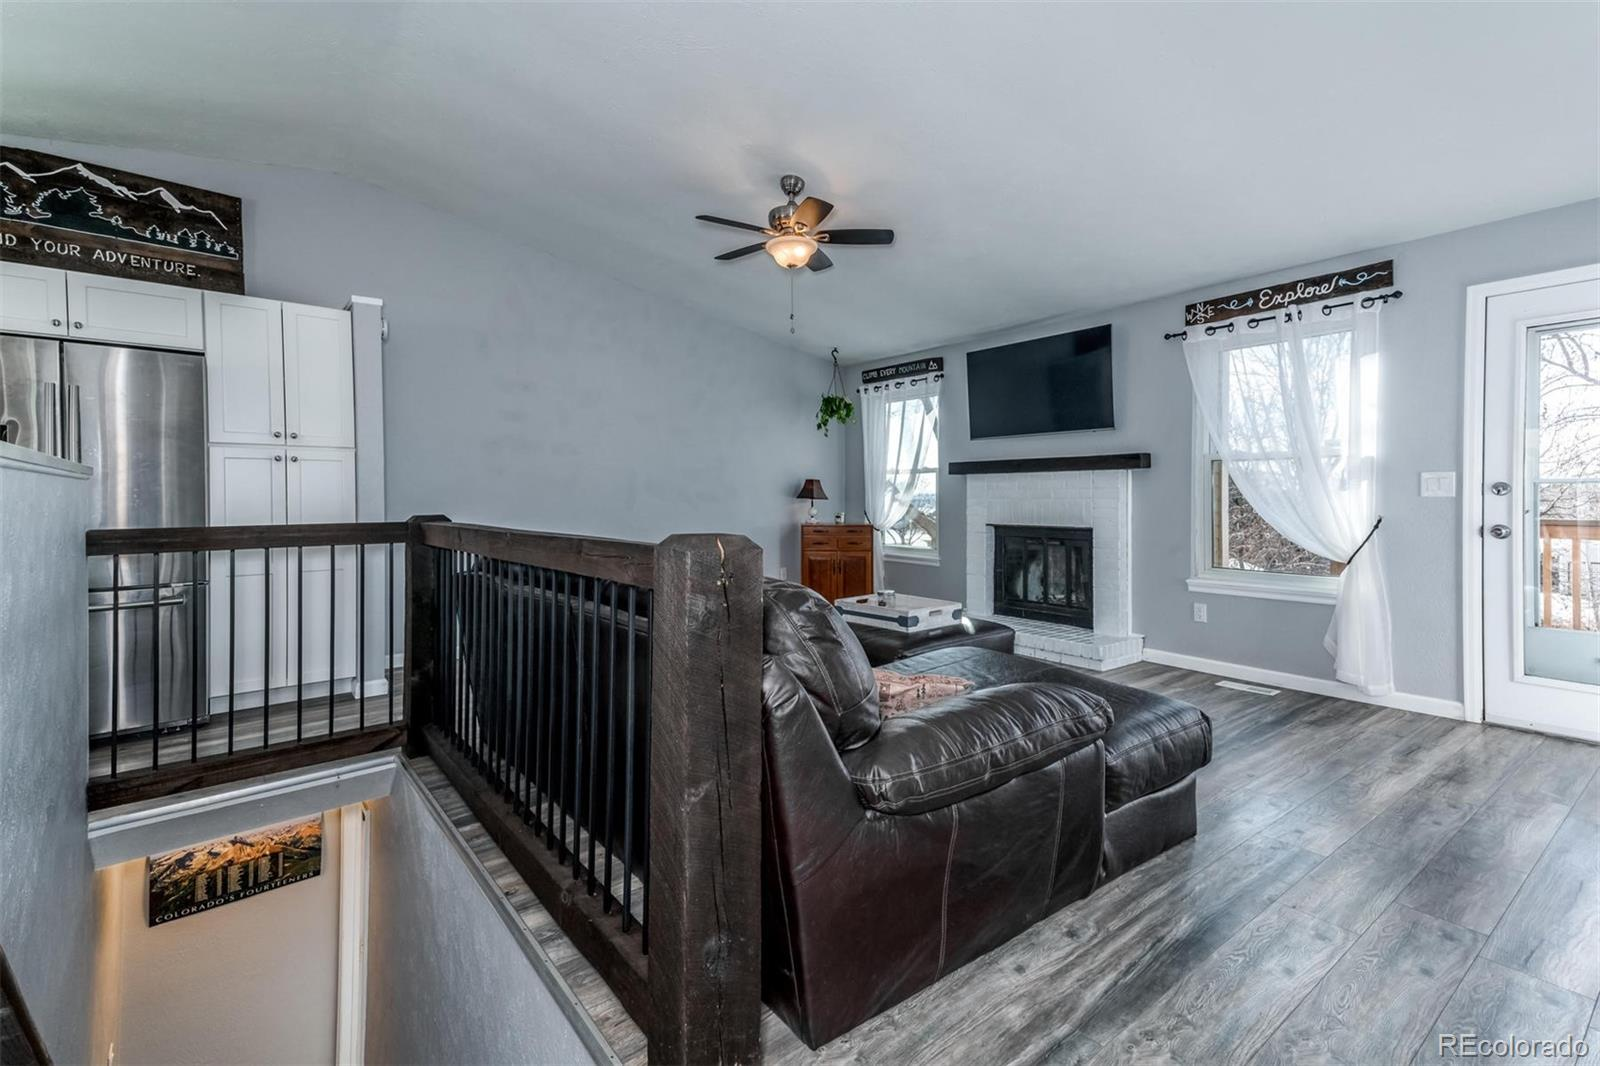 MLS# 5599126 - 9 - 5806 W 74th Place, Arvada, CO 80003